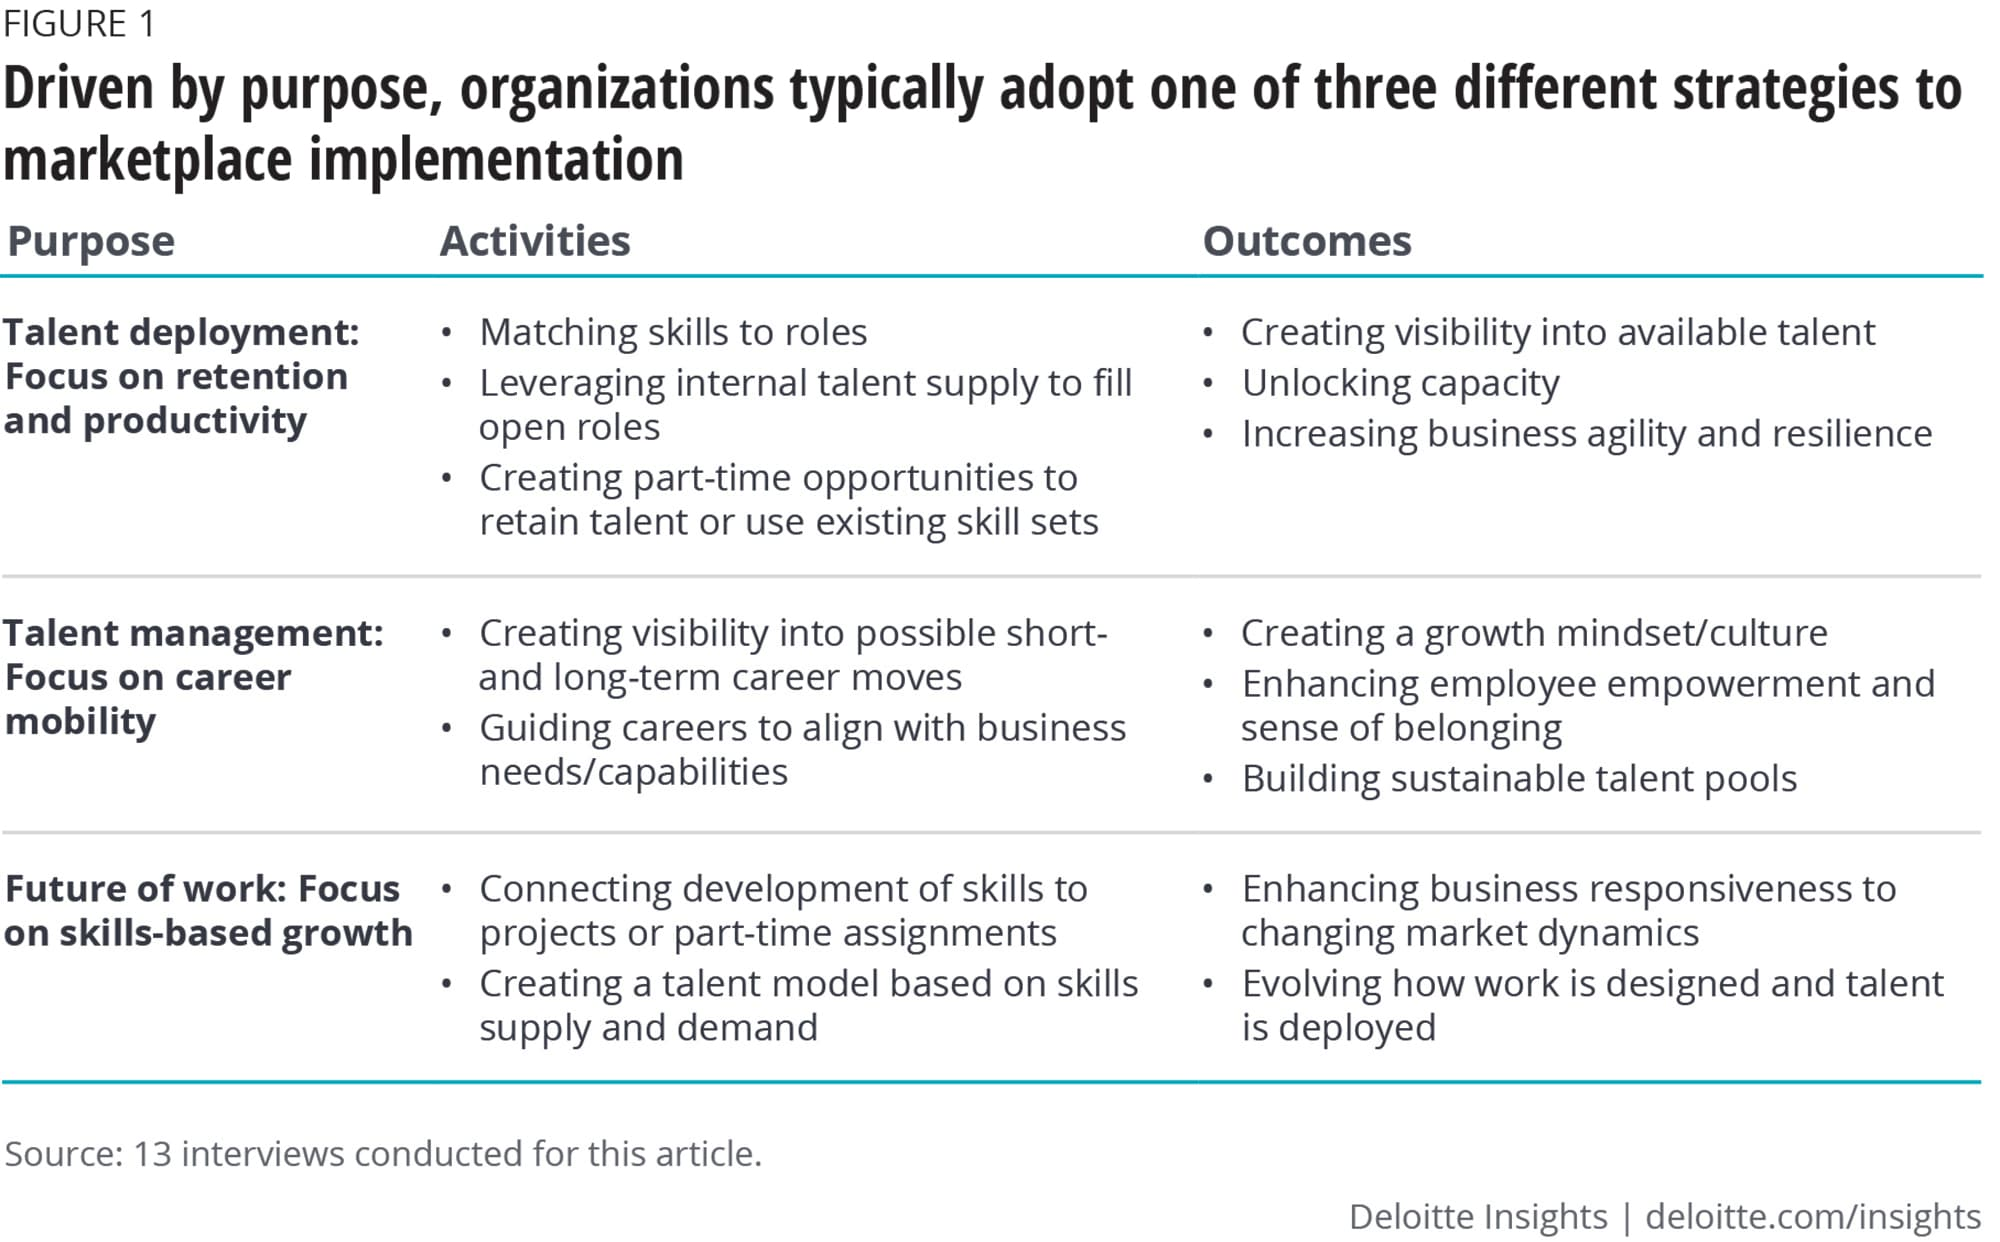 Driven by purpose, organizations typically adopt one of three different strategies to marketplace implementation